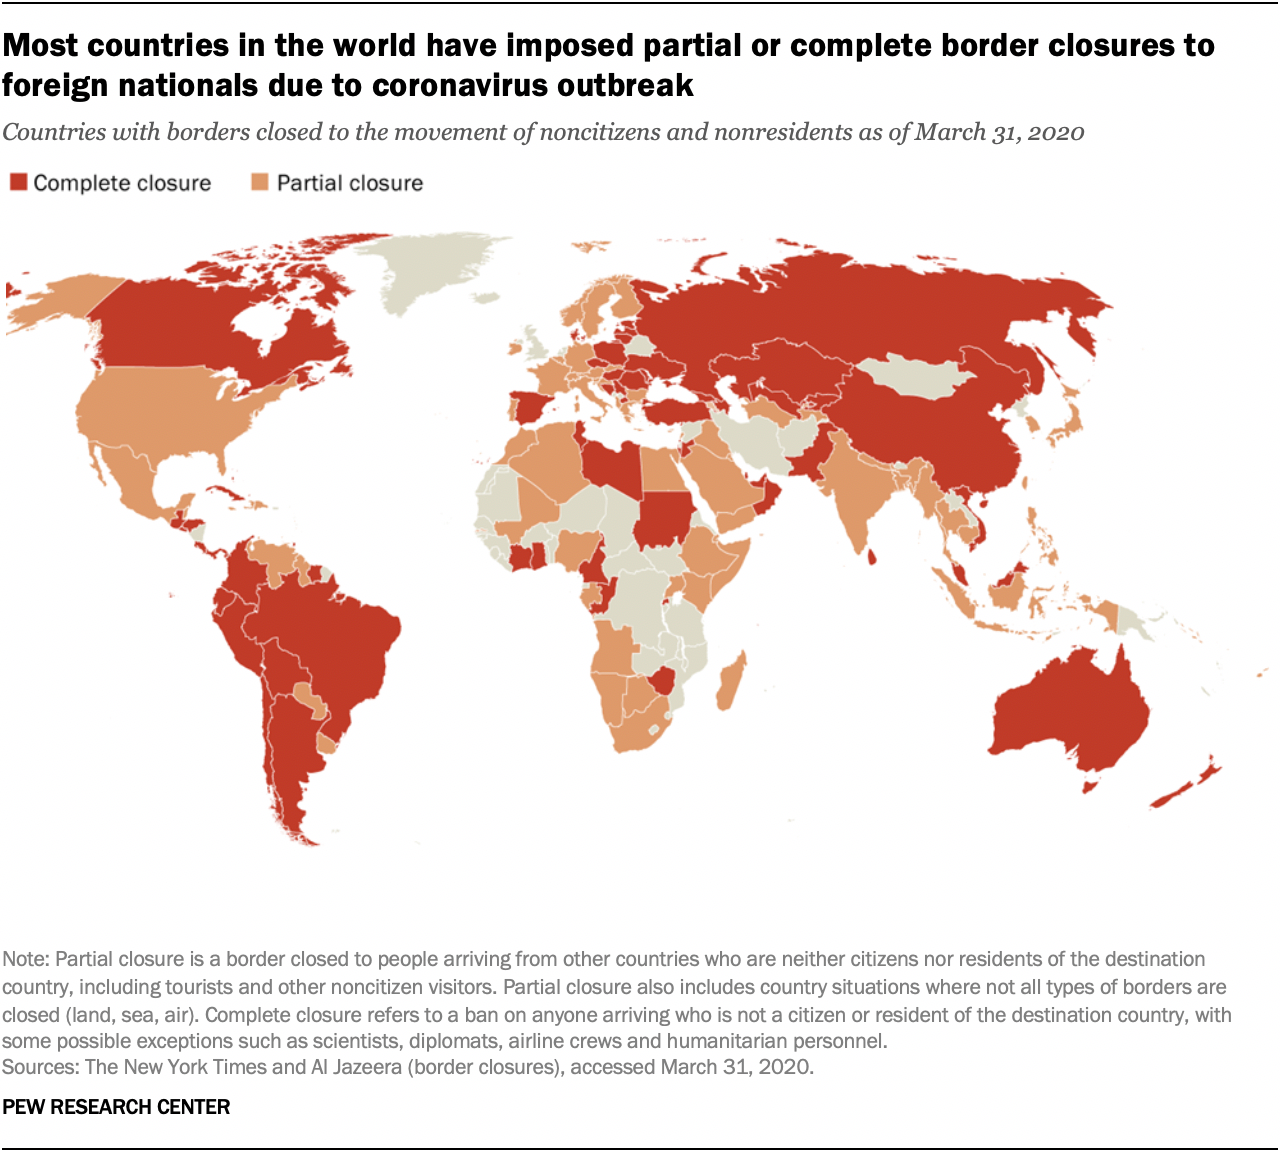 Most countries in the world have imposed partial or complete border closures to foreign nationals due to coronavirus outbreak